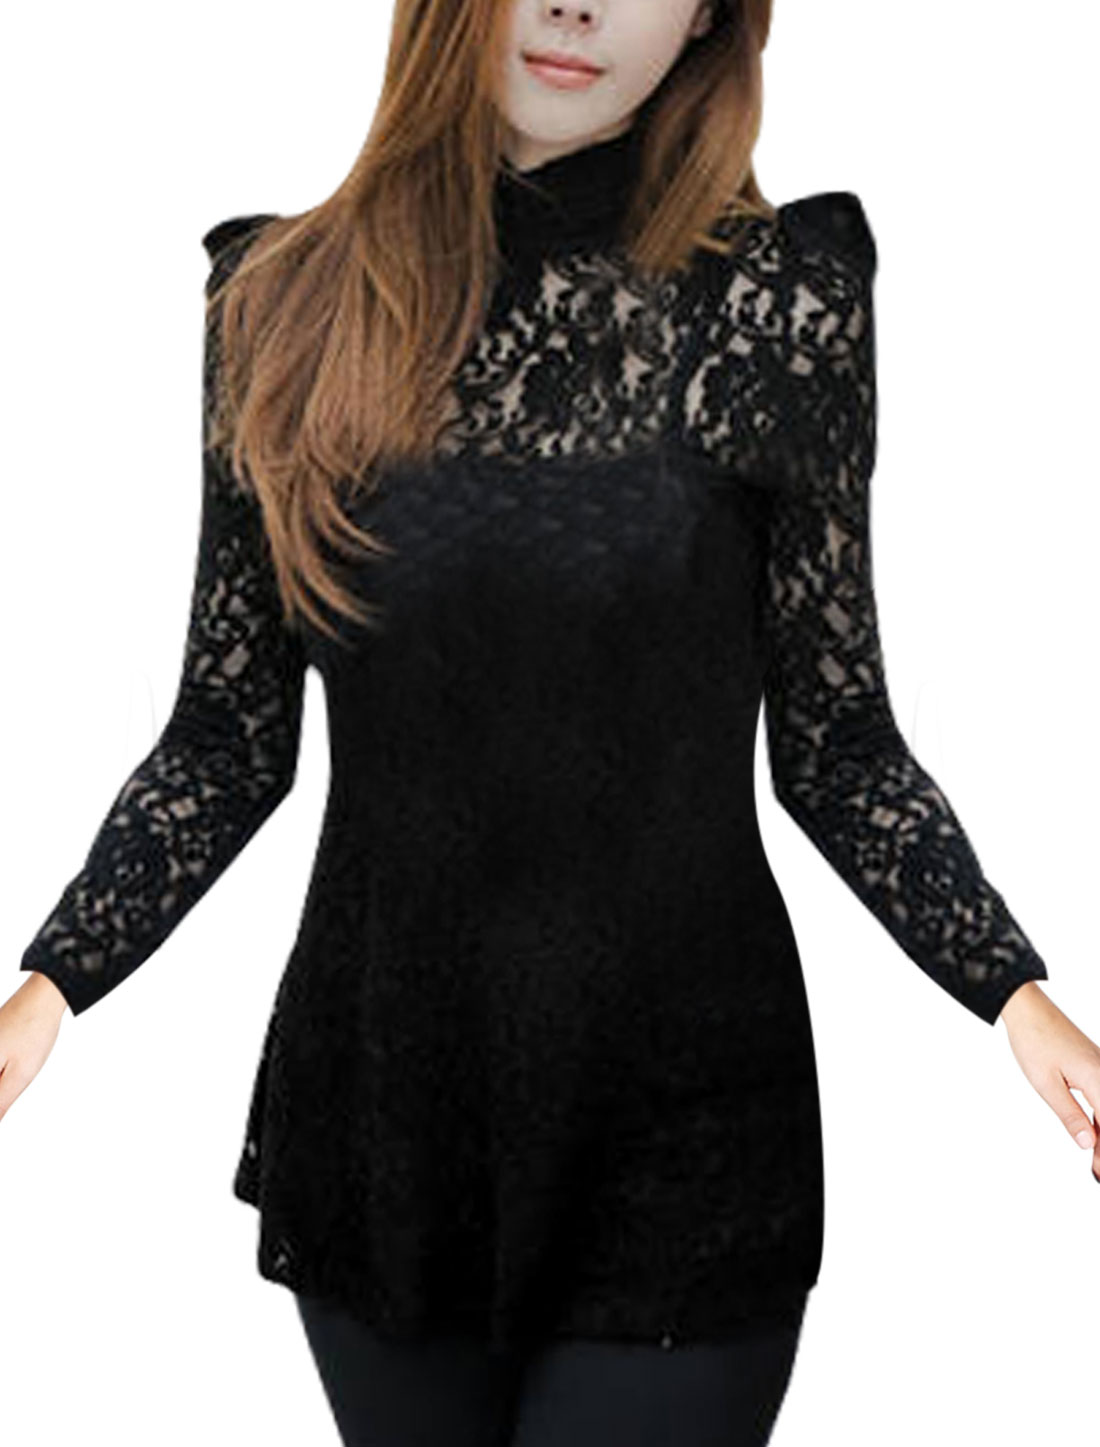 Sexy Ladies Back Toggle Closure Lace Stretchy Semi Sheer Sleeve Shirt Black Xs